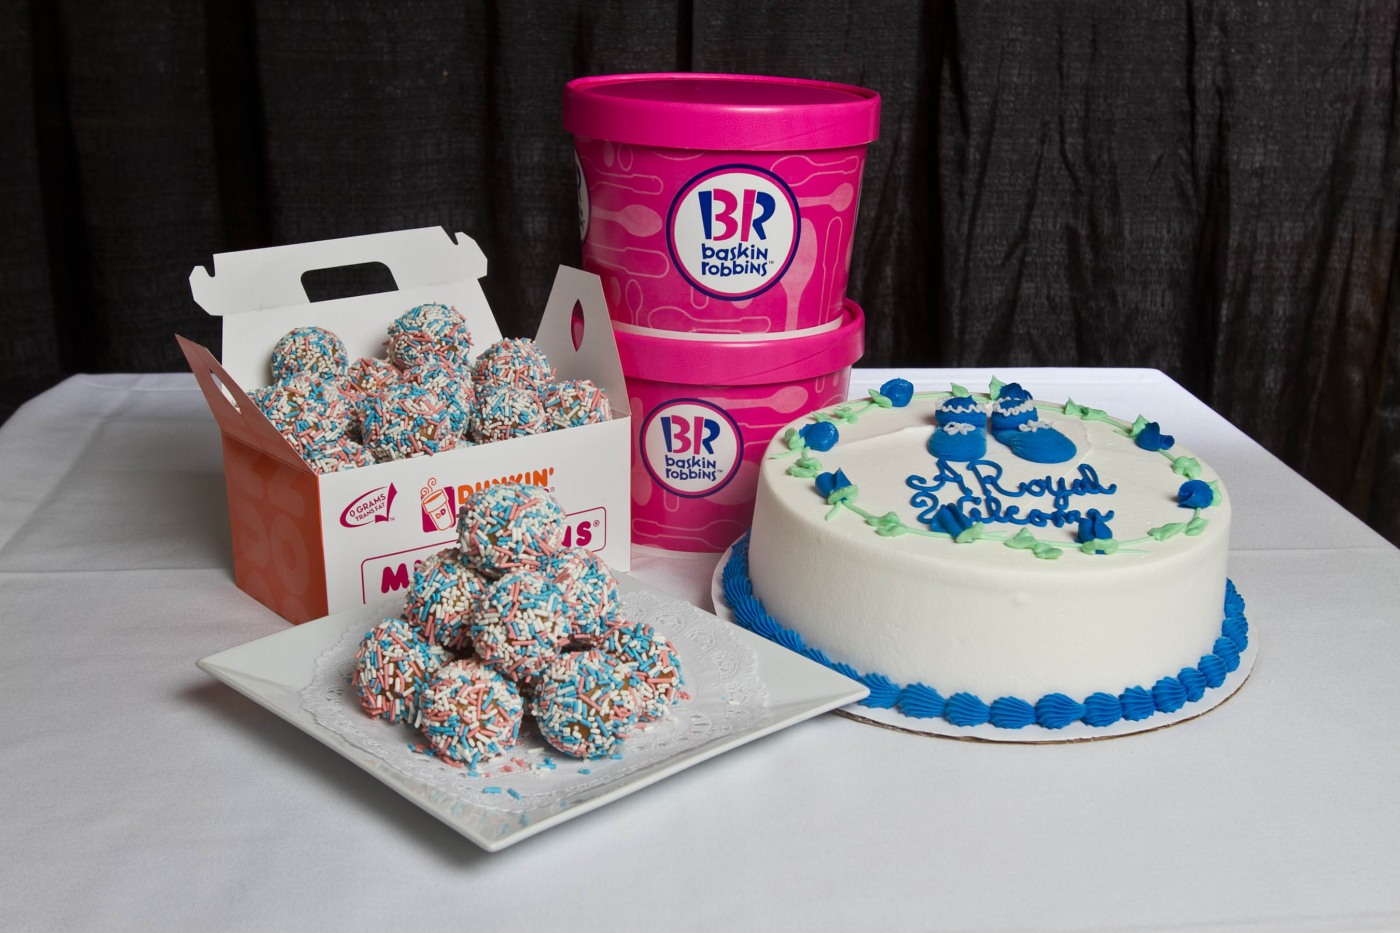 Dunkin Donuts And Baskin Robbins Present Sweet Treats To Welcome